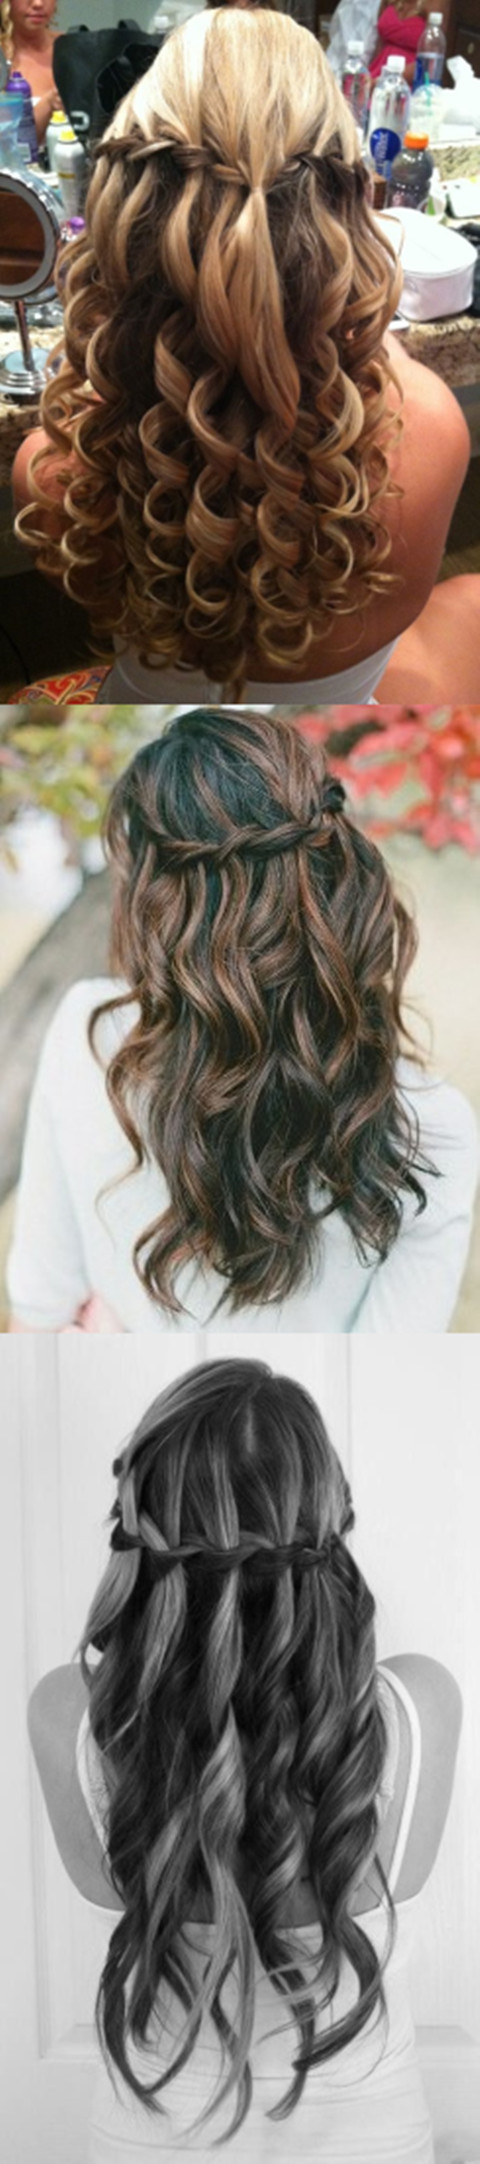 Waterfall hairstyles for 2014 proms